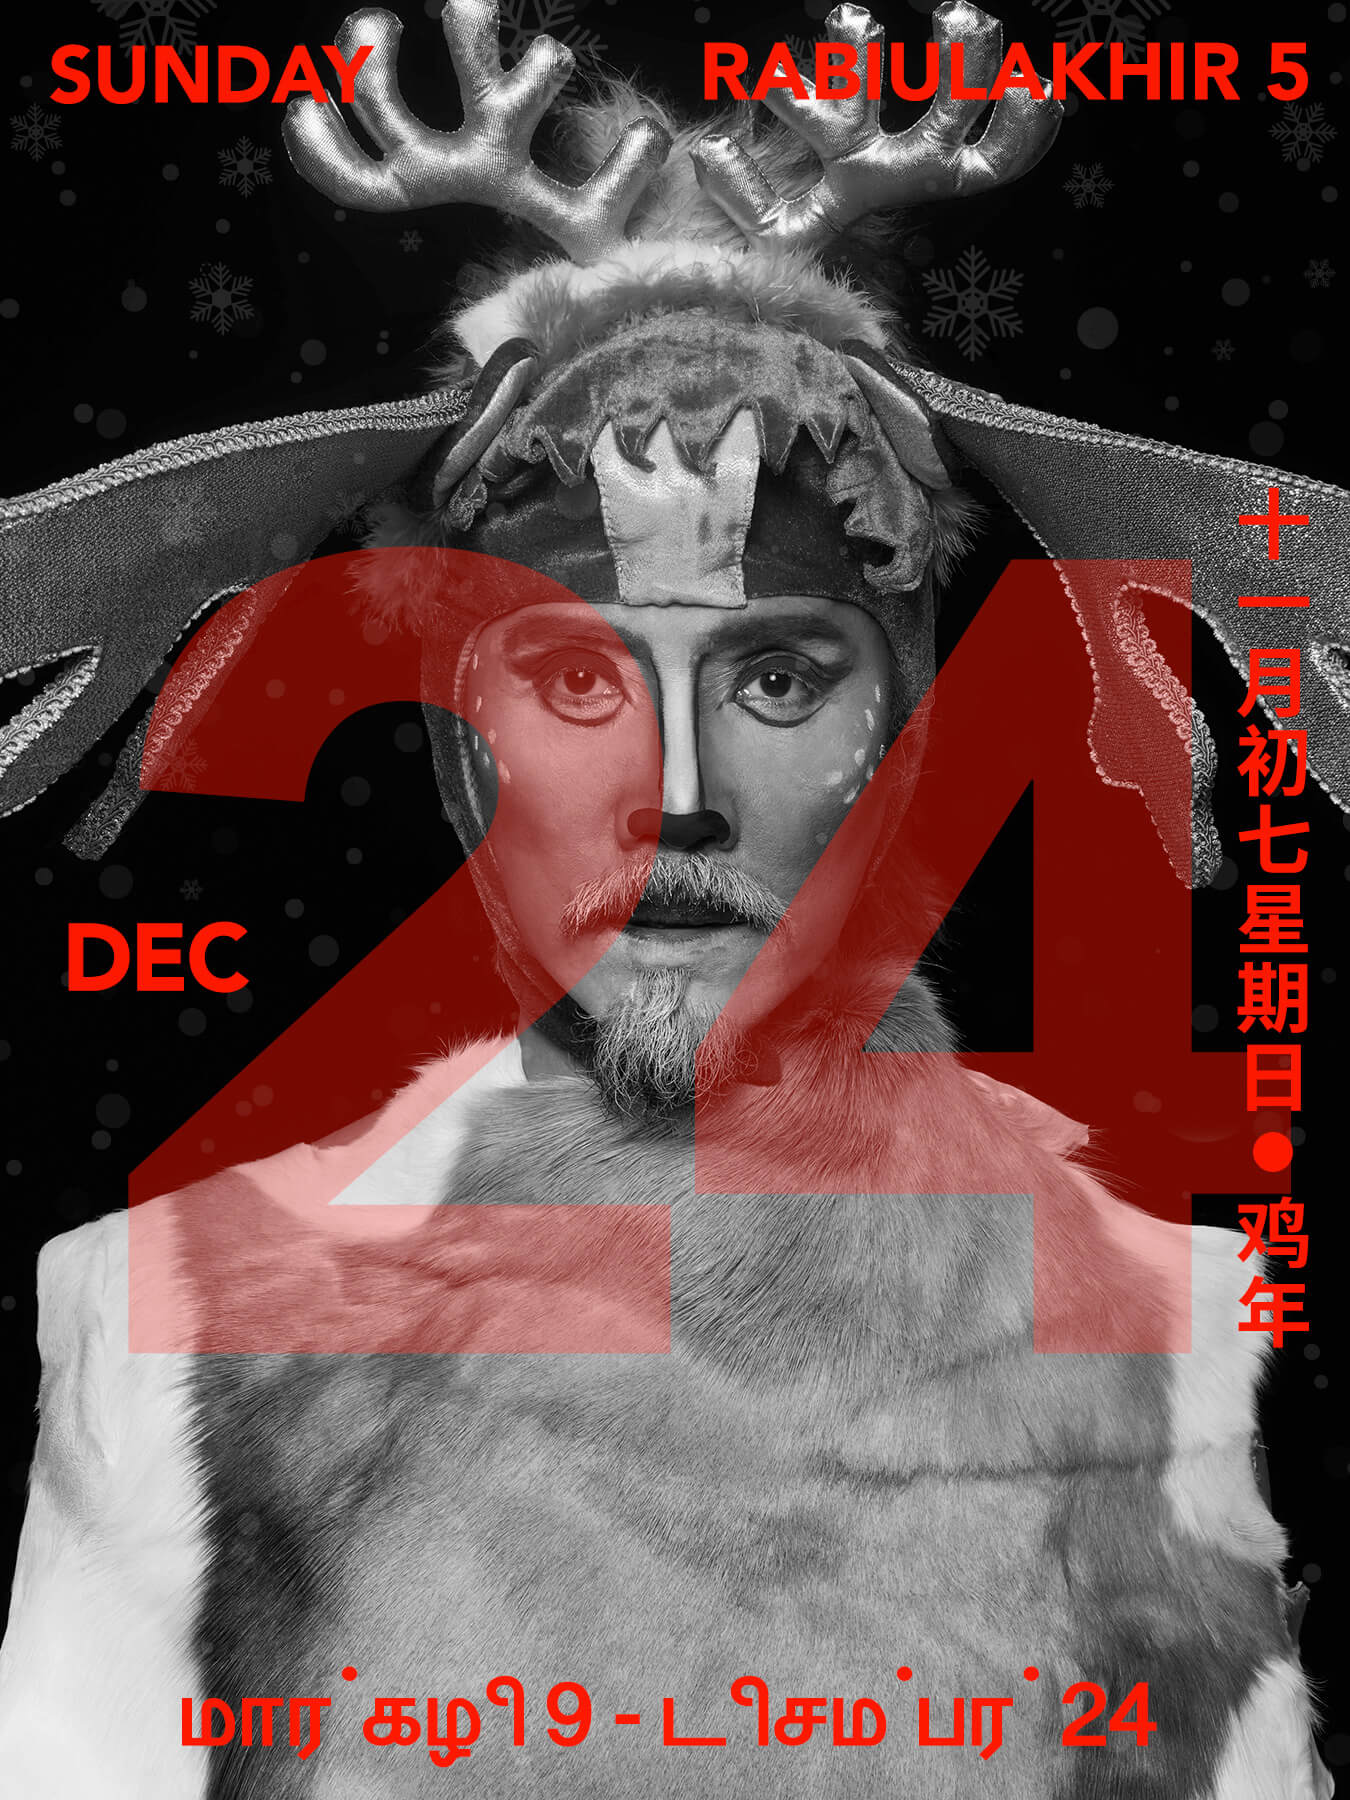 24 Dec 2017 Derong is dressed in a reindeer costume